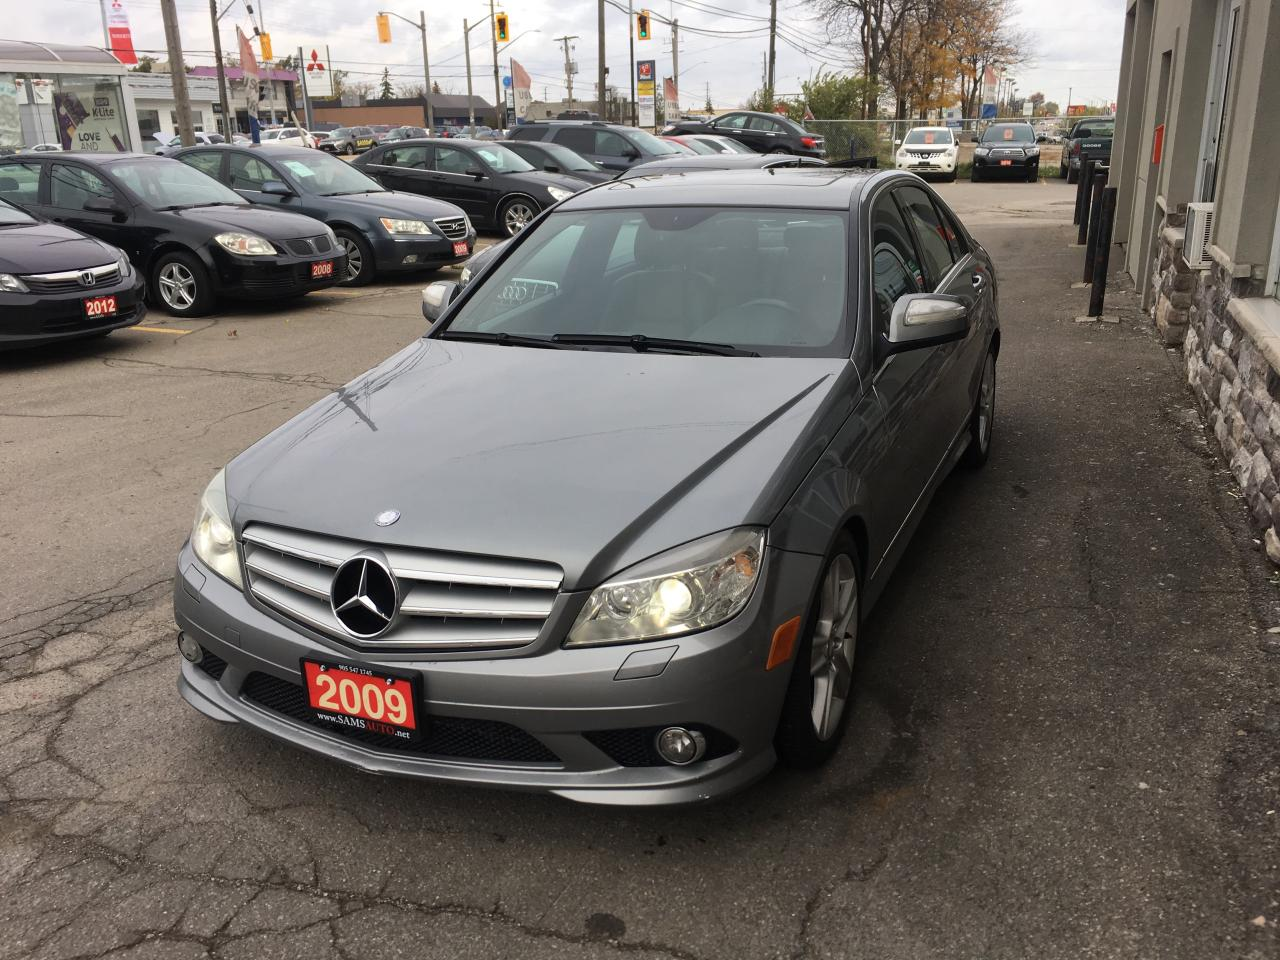 Used 2009 mercedes benz c 300 3 0l 4matic for sale in for 2009 mercedes benz c 300